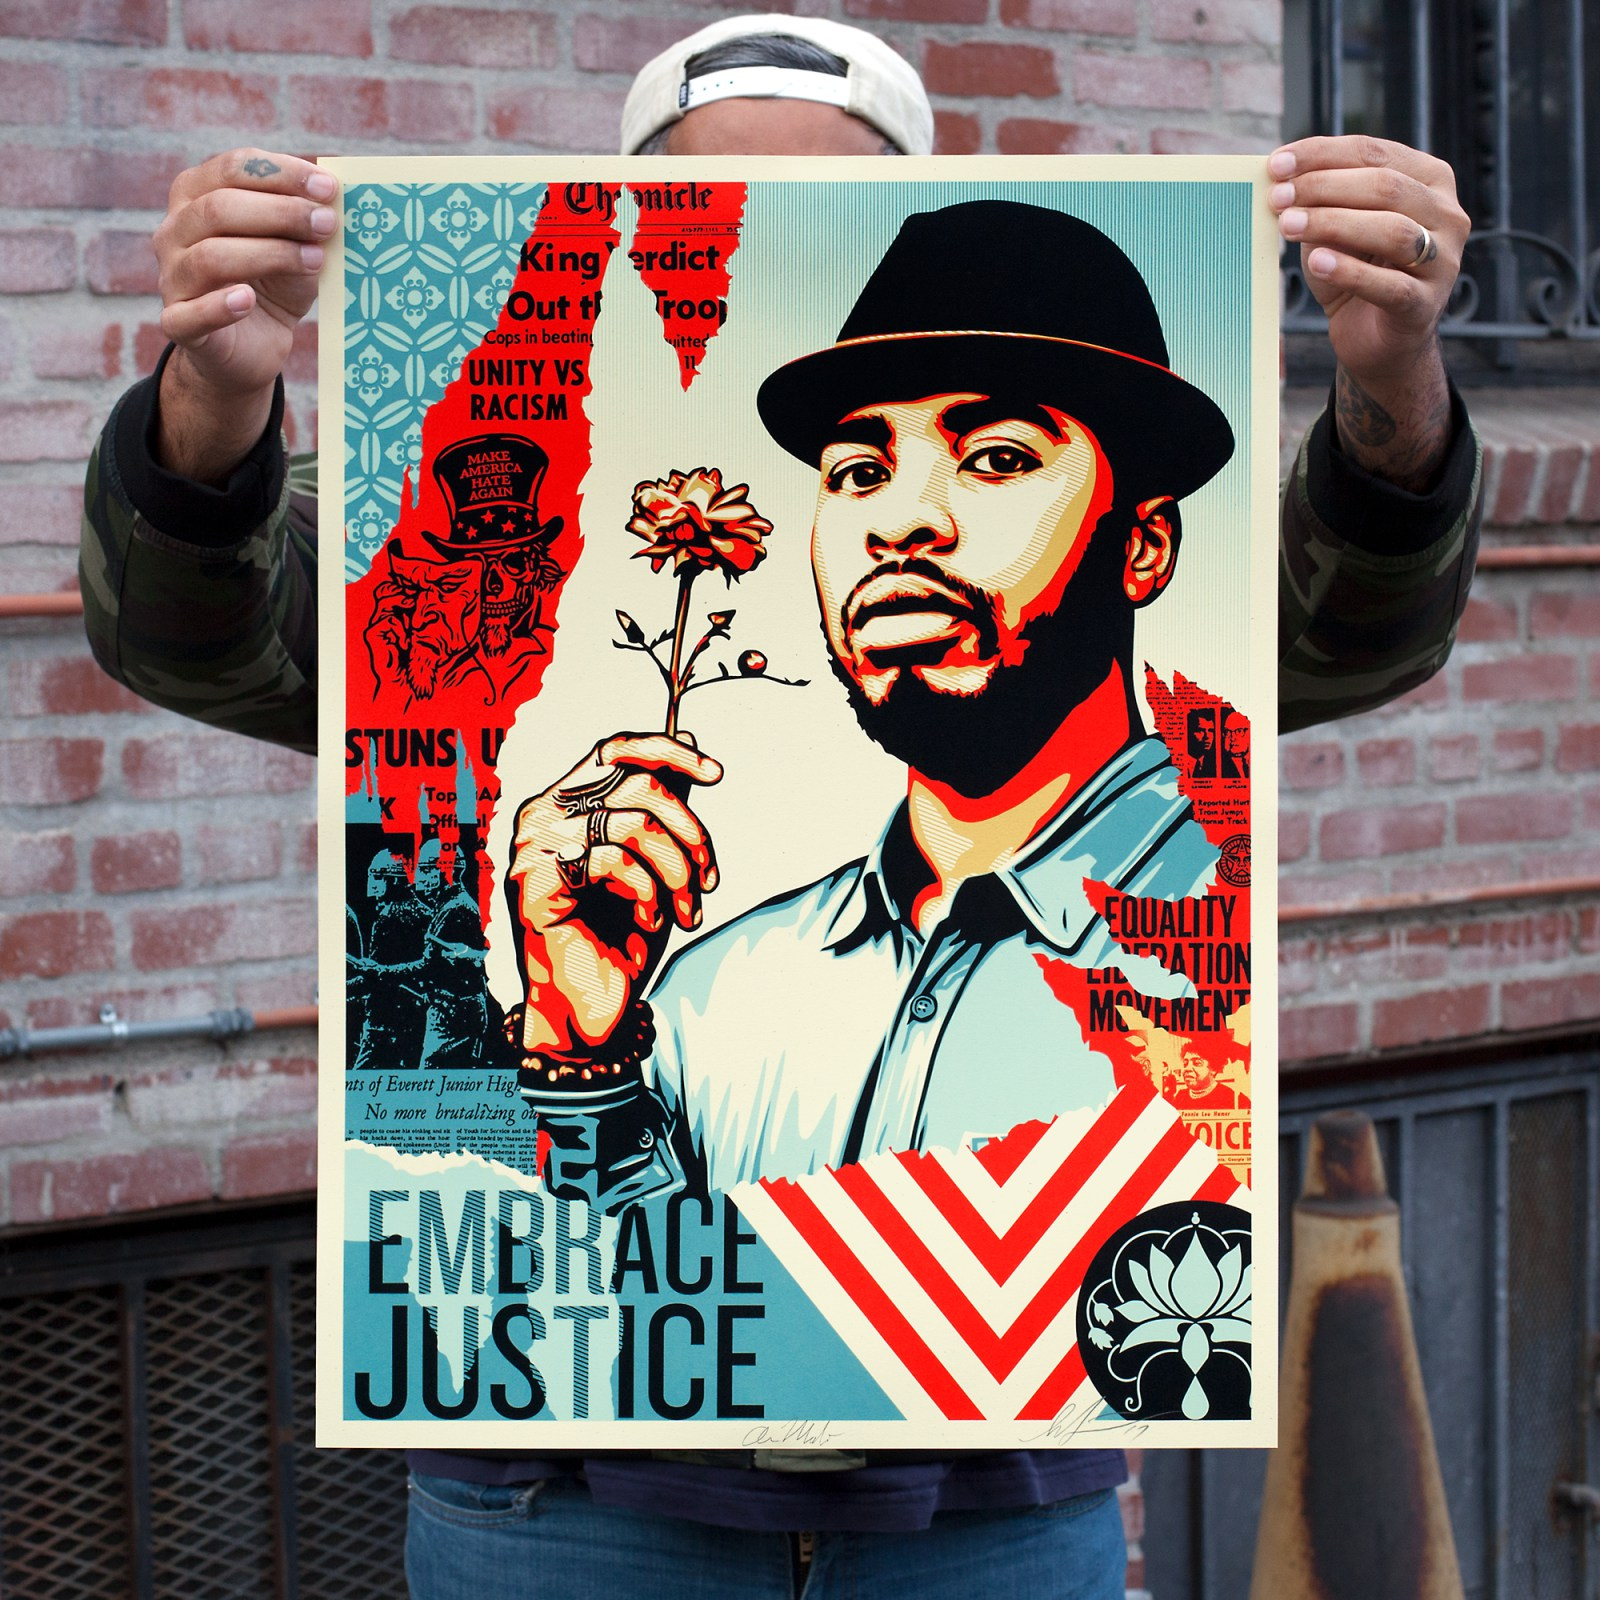 inside the rock poster frame blog obey giant embrace justice poster release. Black Bedroom Furniture Sets. Home Design Ideas